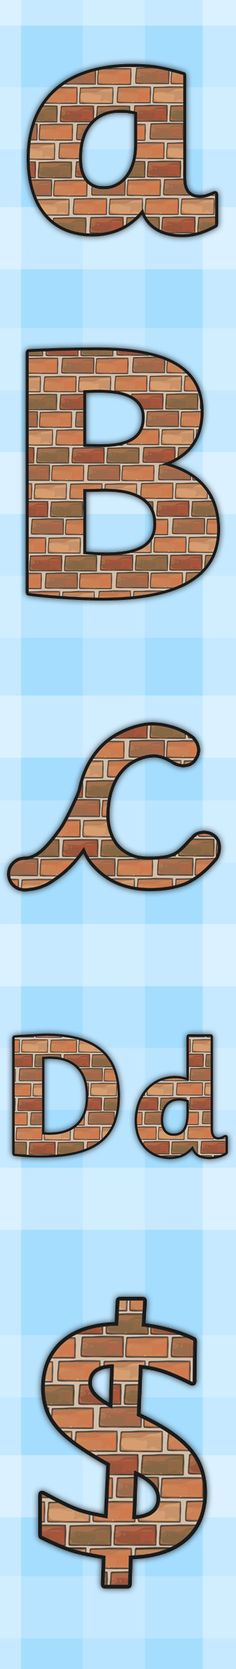 Twinkl Resources >> Brick Themed A4 Display Lettering >> Printable resources for Primary, EYFS, KS1 and SEN.  Thousands of classroom displays and teaching aids! Topics, Houses and Homes, Display, Classroom, Lettering, Bricks